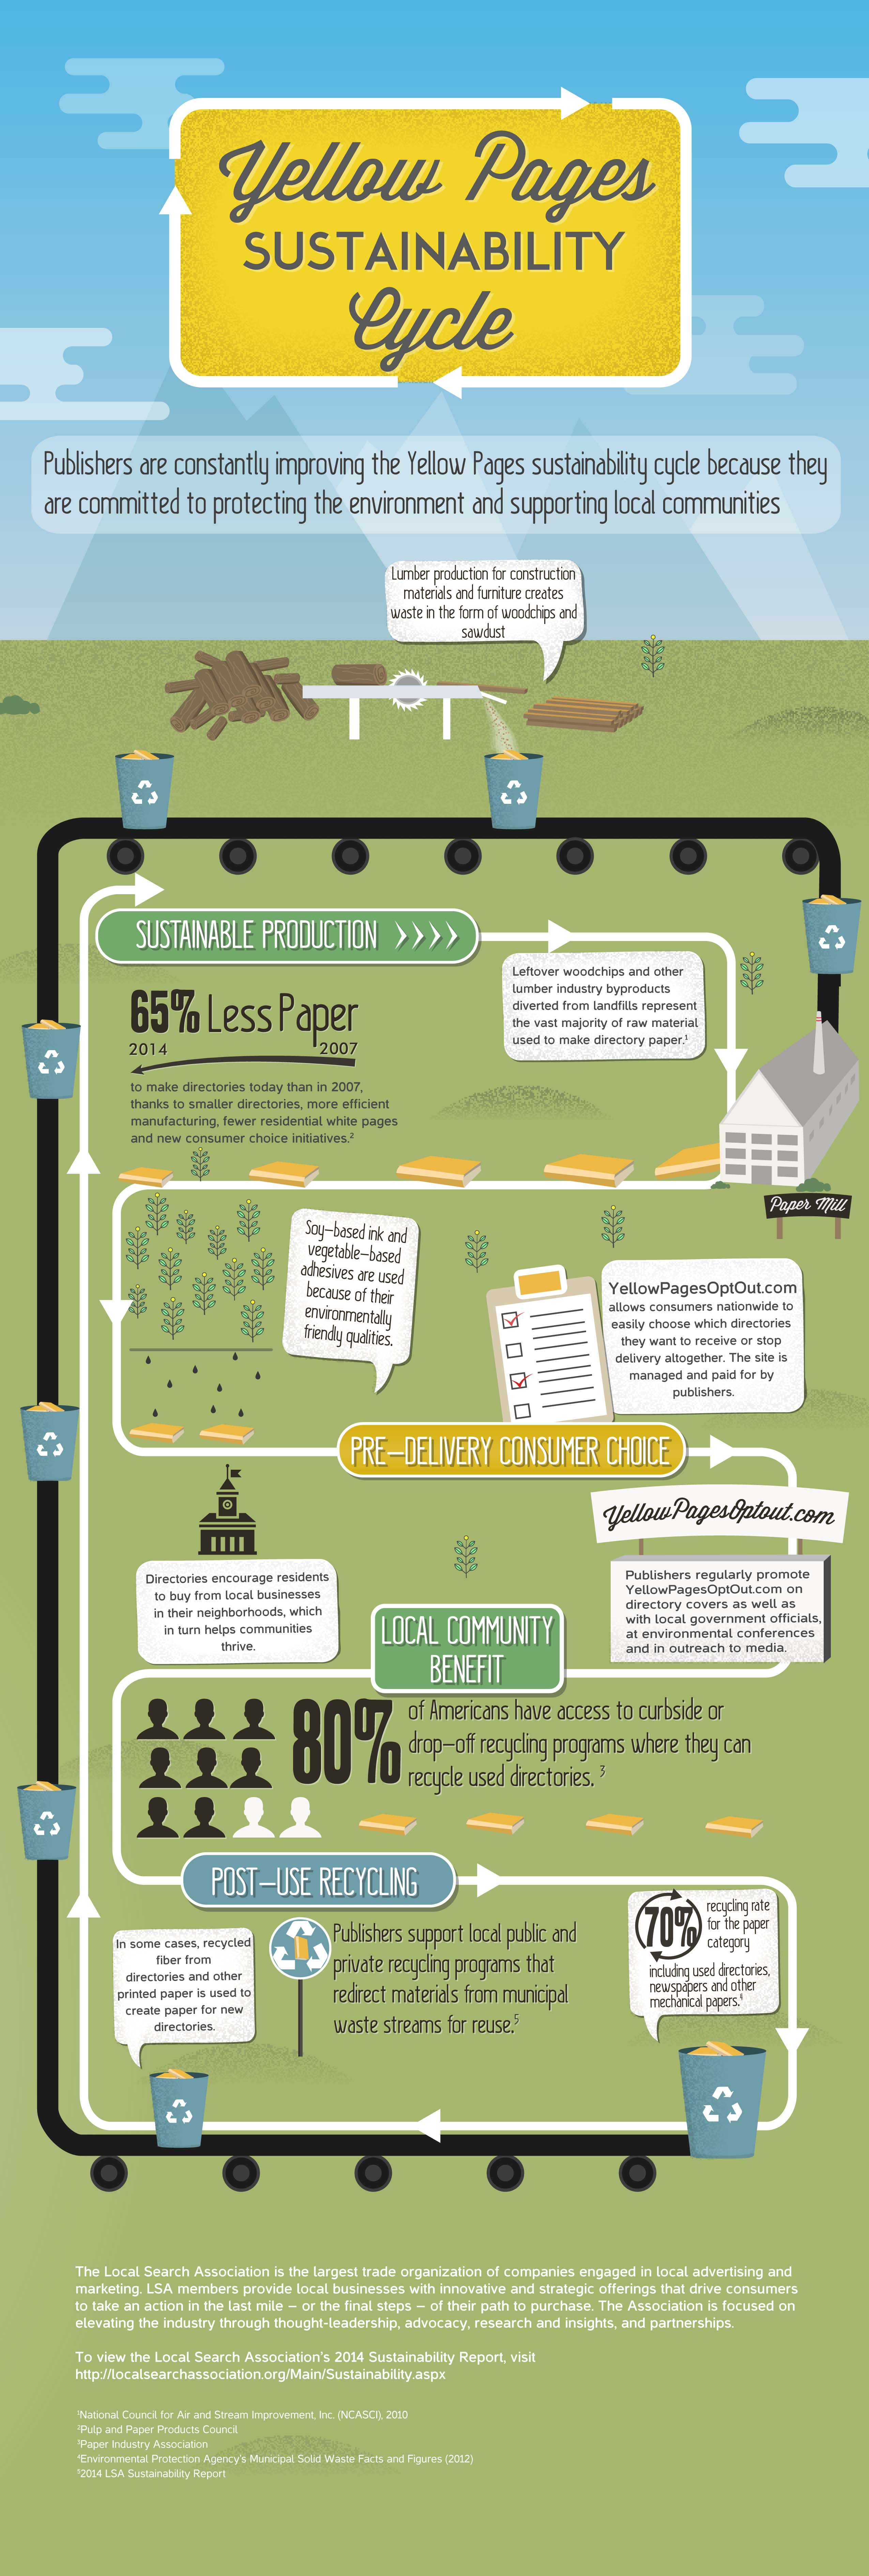 Yellow Pages Sustainability Cycle